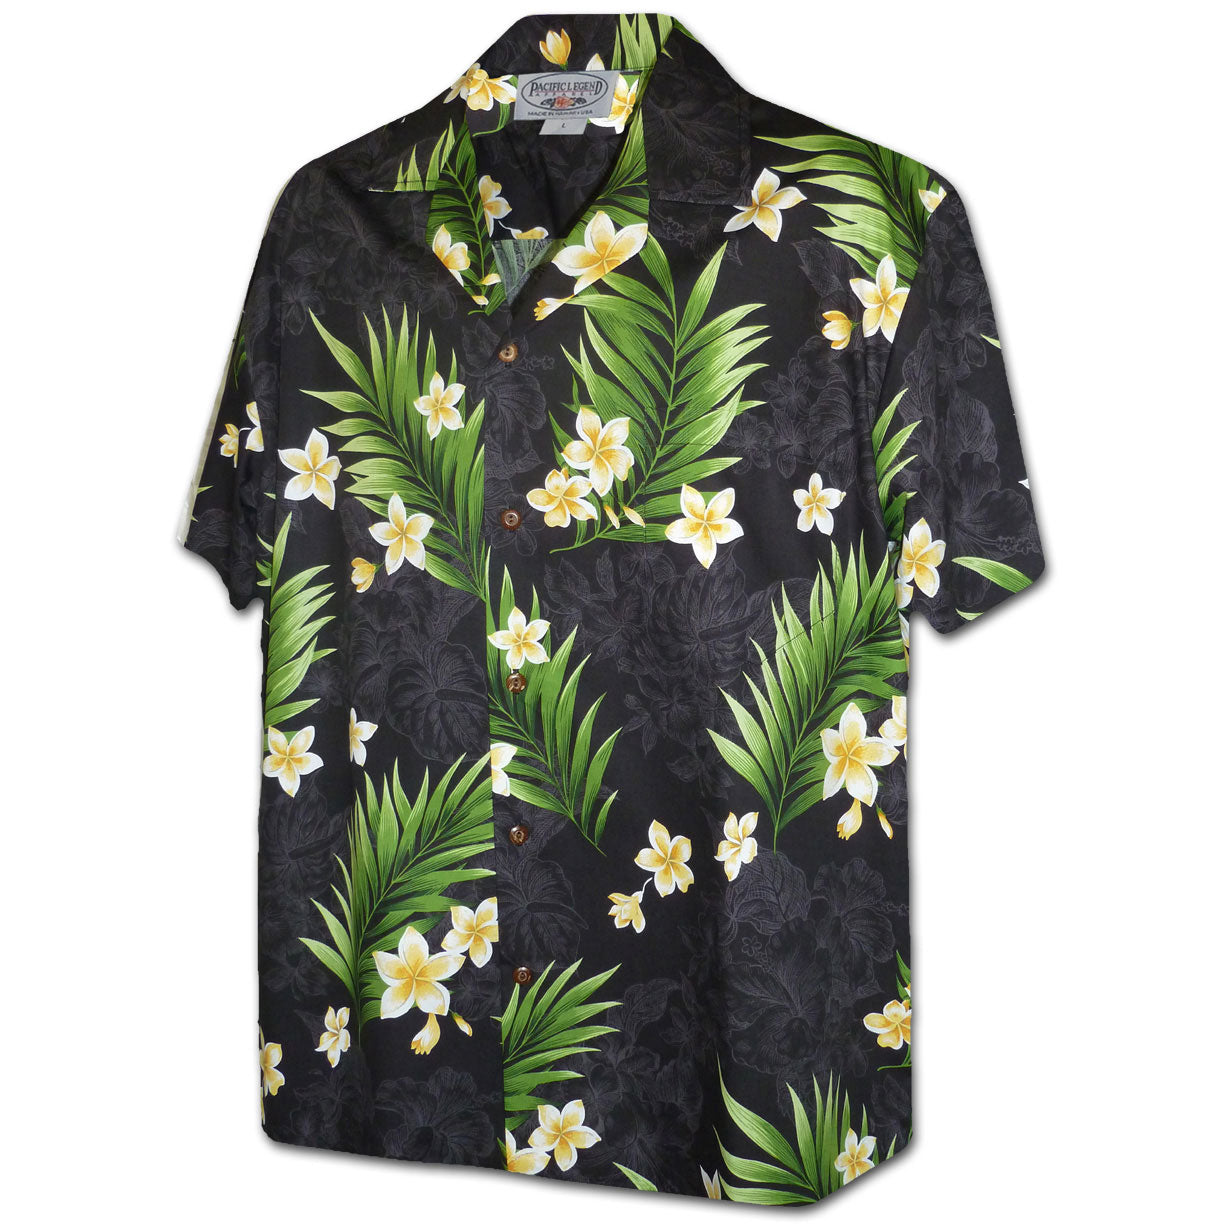 Garden Shadows Black Hawaiian Shirt